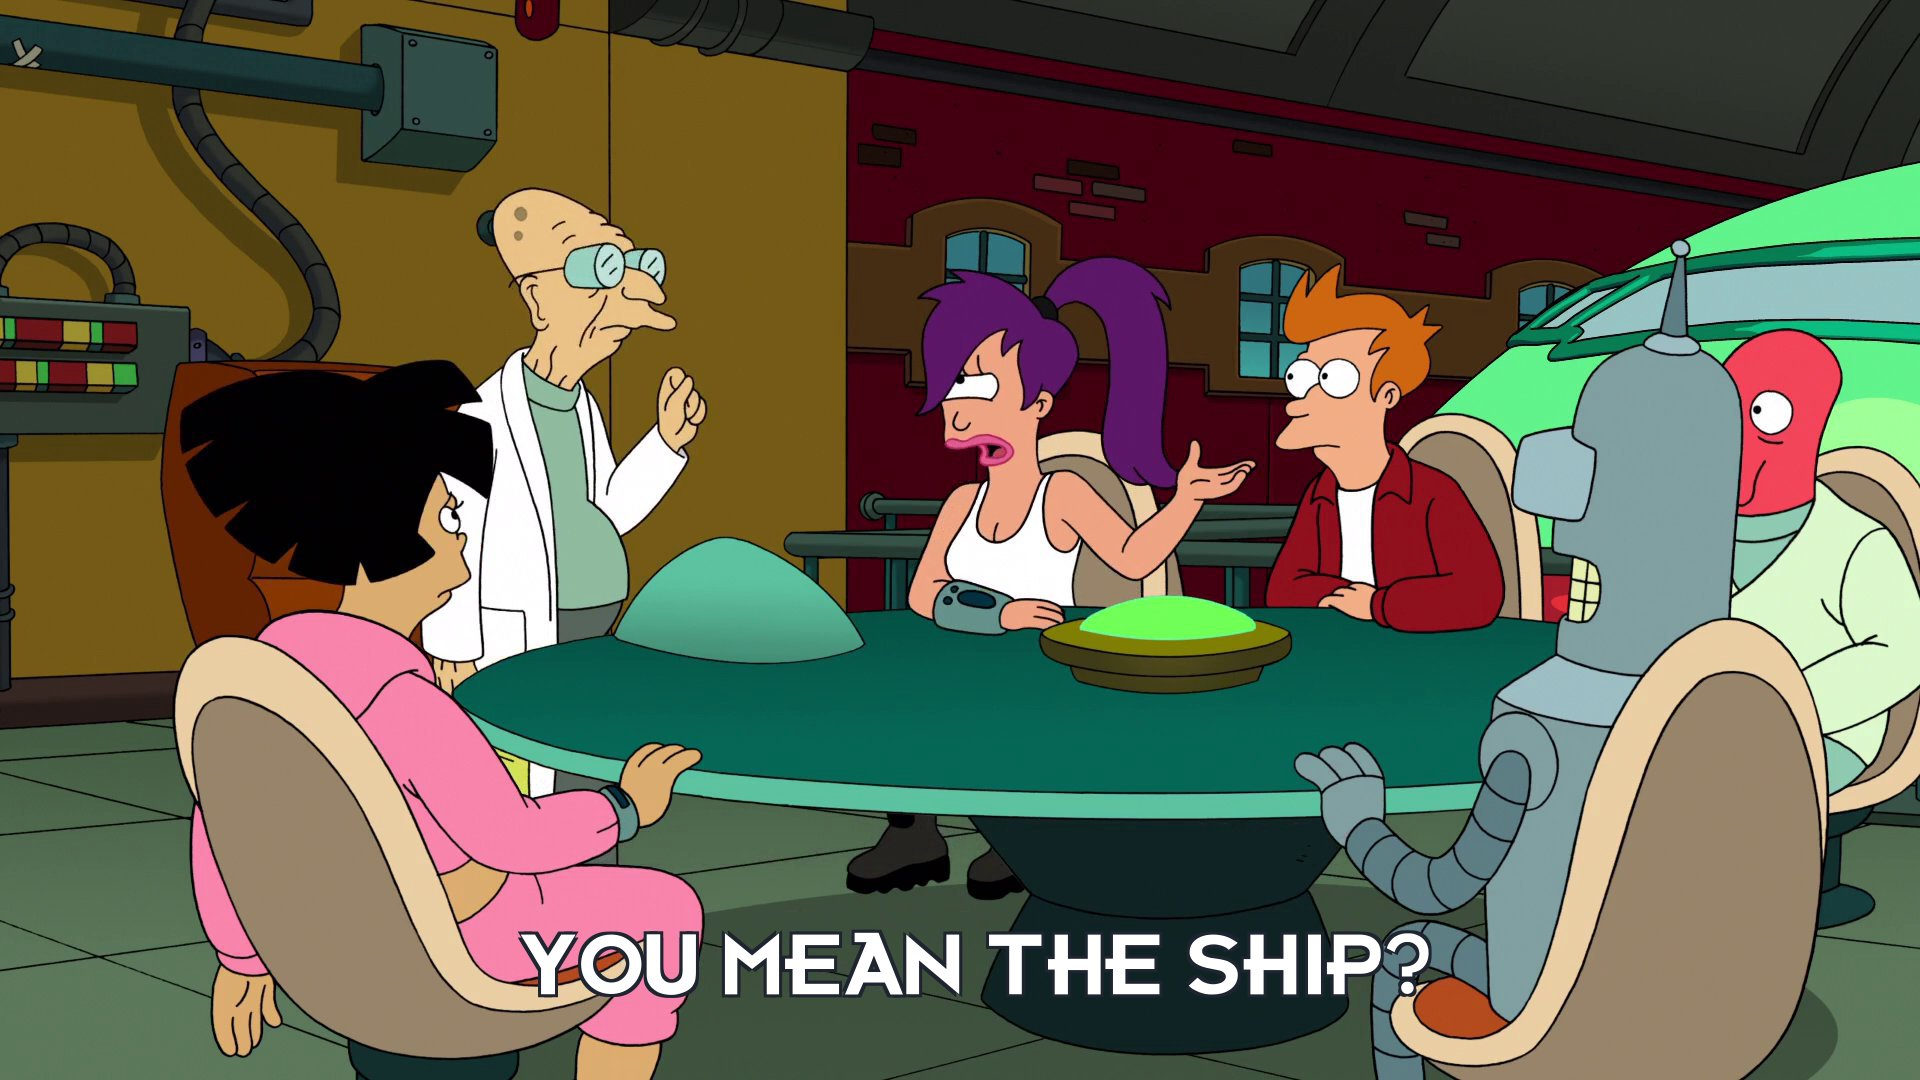 Turanga Leela: You mean the ship?